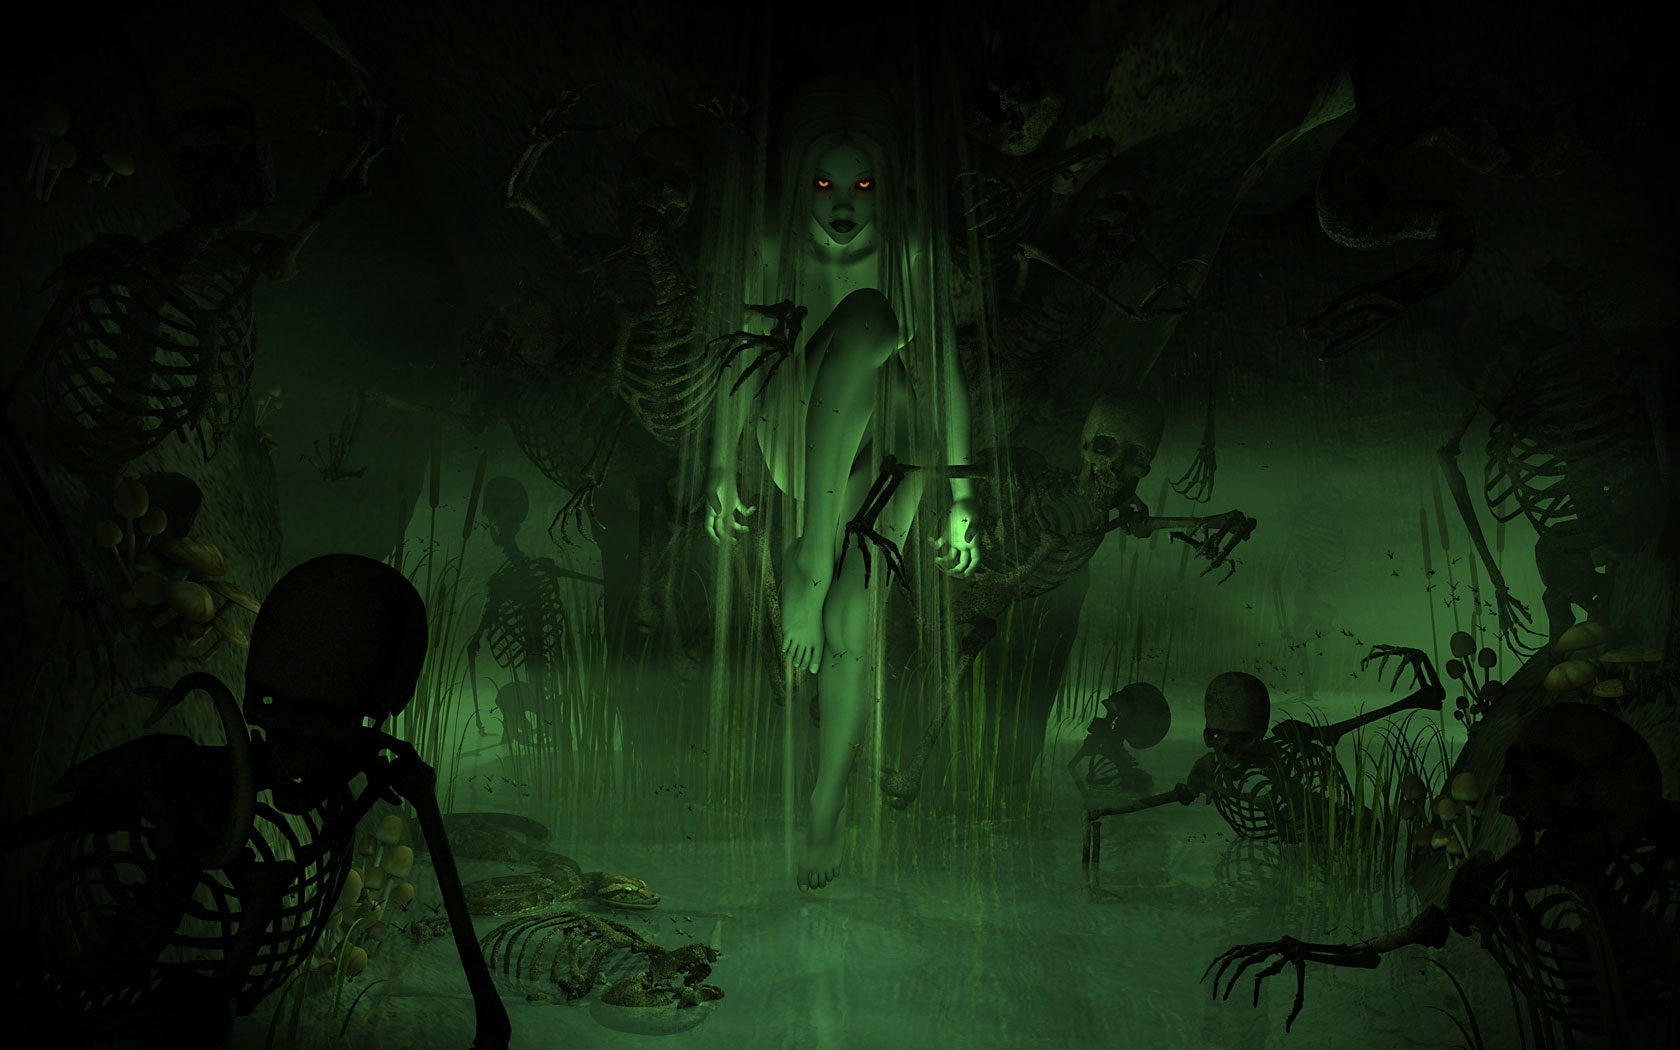 horror evil women girl swamp demon skeleton skull wallpaper background 1680x1050